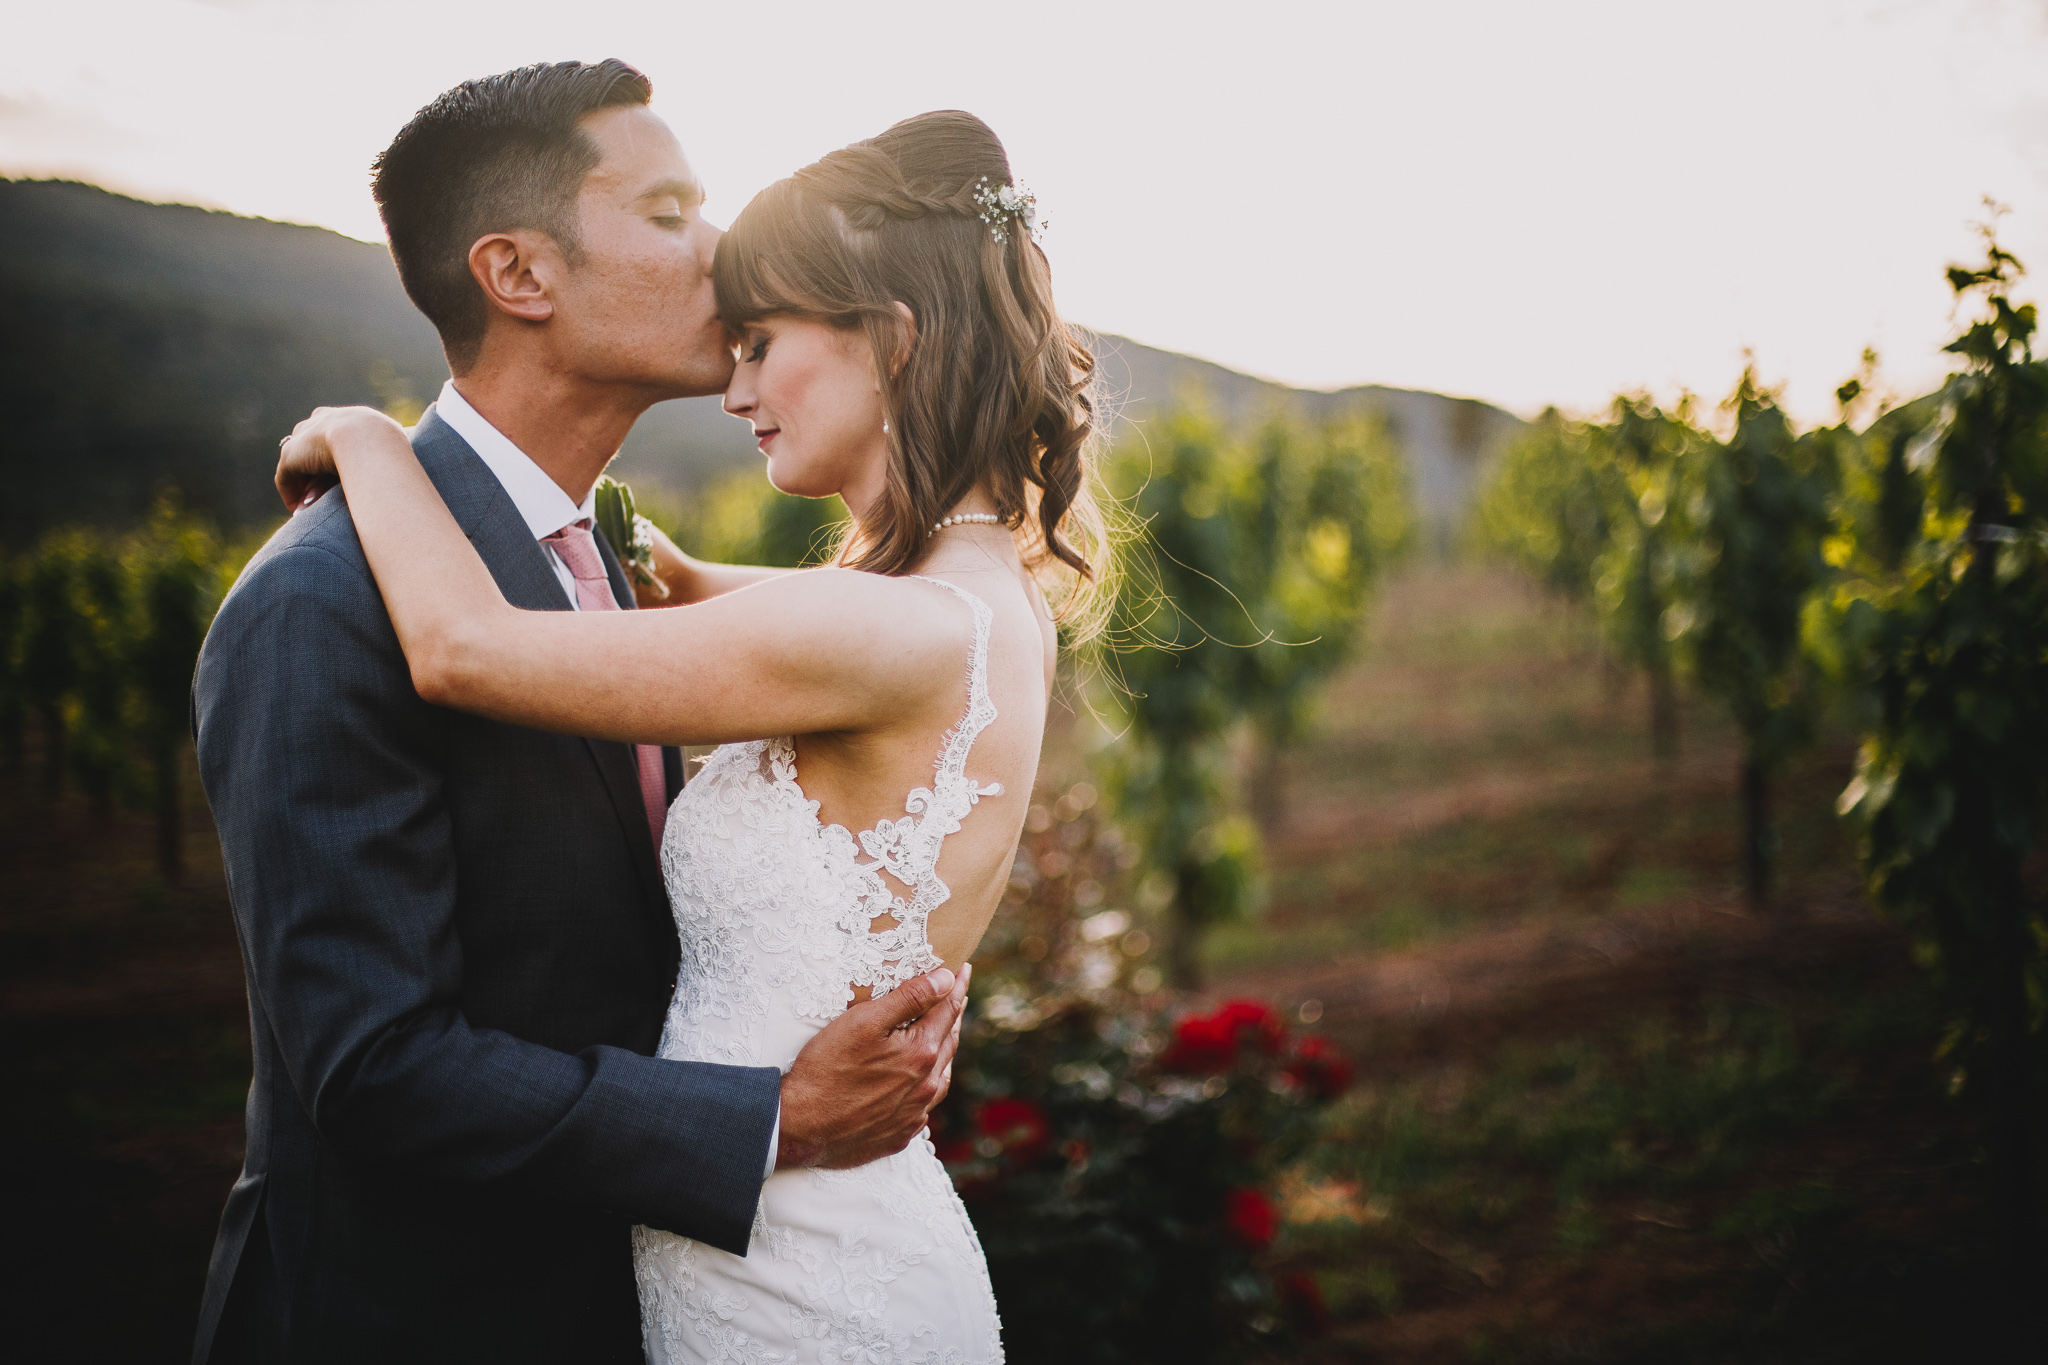 Archer Inspired Photography Kirigin Cellars Gilroy California SoCal Orange County Los Angeles Long Beach Lifestyle Wedding Elopement Engagement Photographer-420.jpg